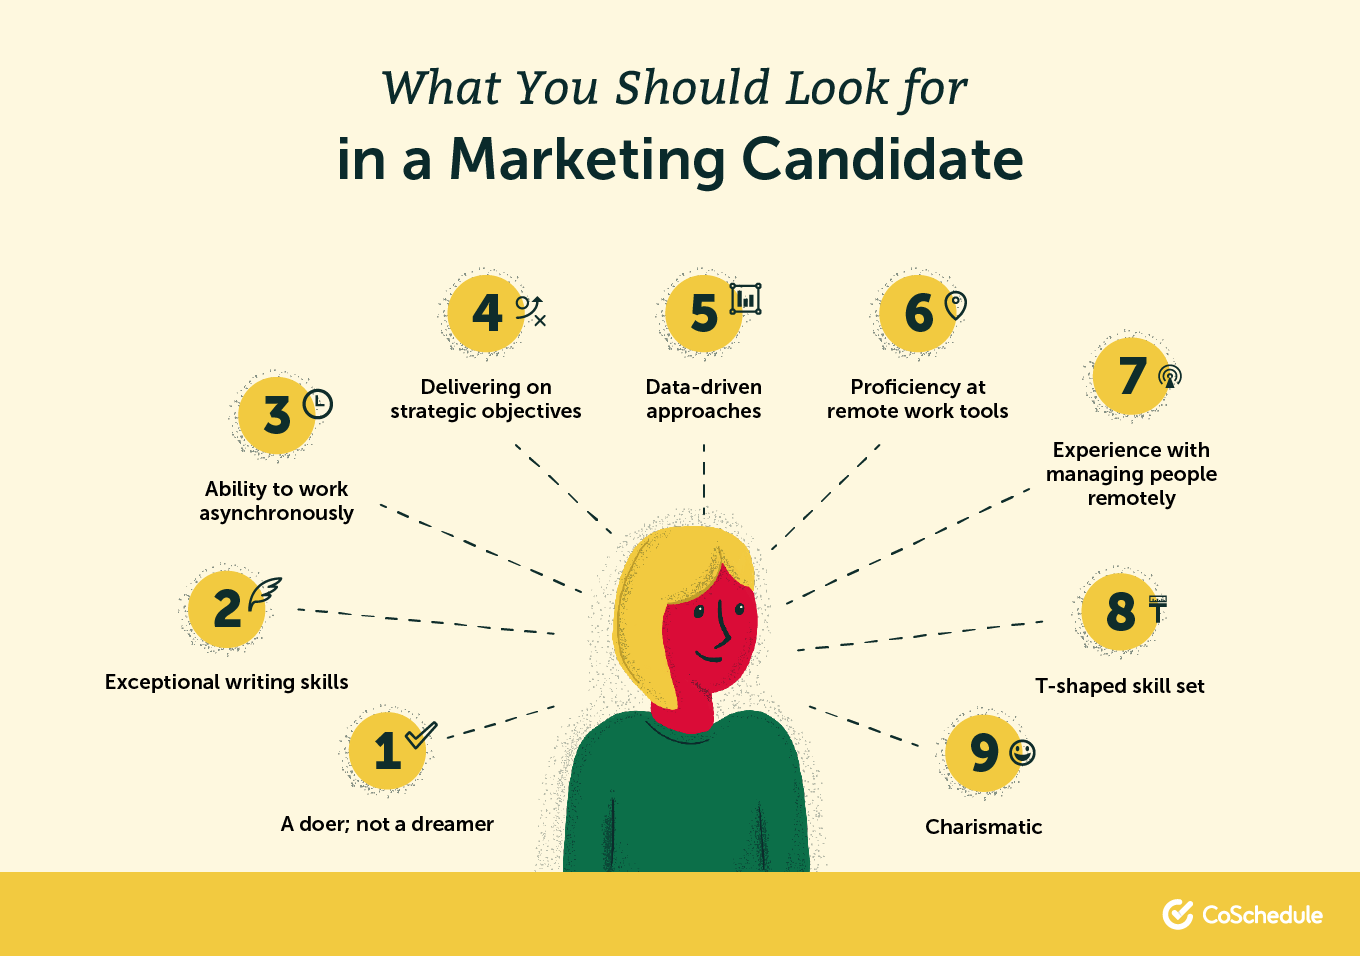 What to look for in a marketing candidate